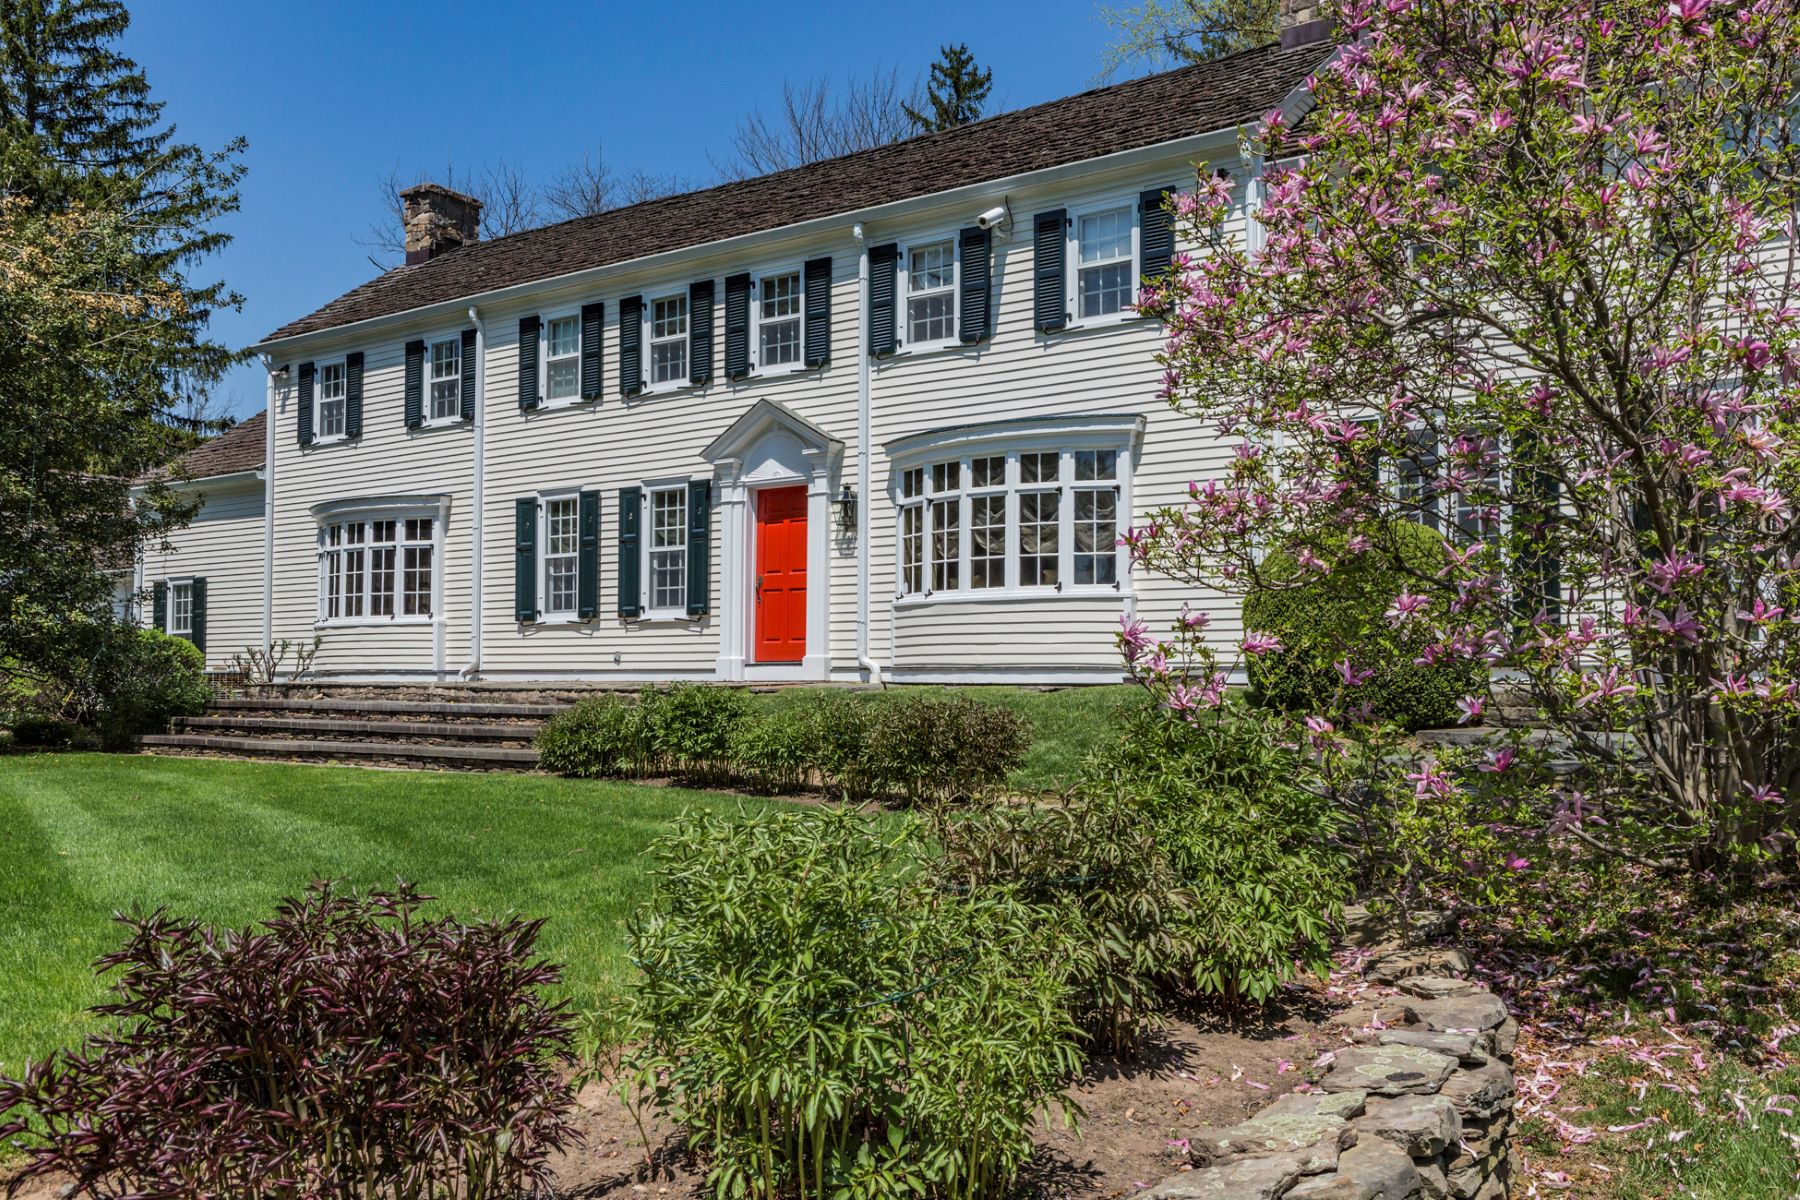 Single Family Home for Sale at A Good-For-The-Soul Spirit Embodies This Home 179 Stony Brook Road, Hopewell, New Jersey 08525 United States